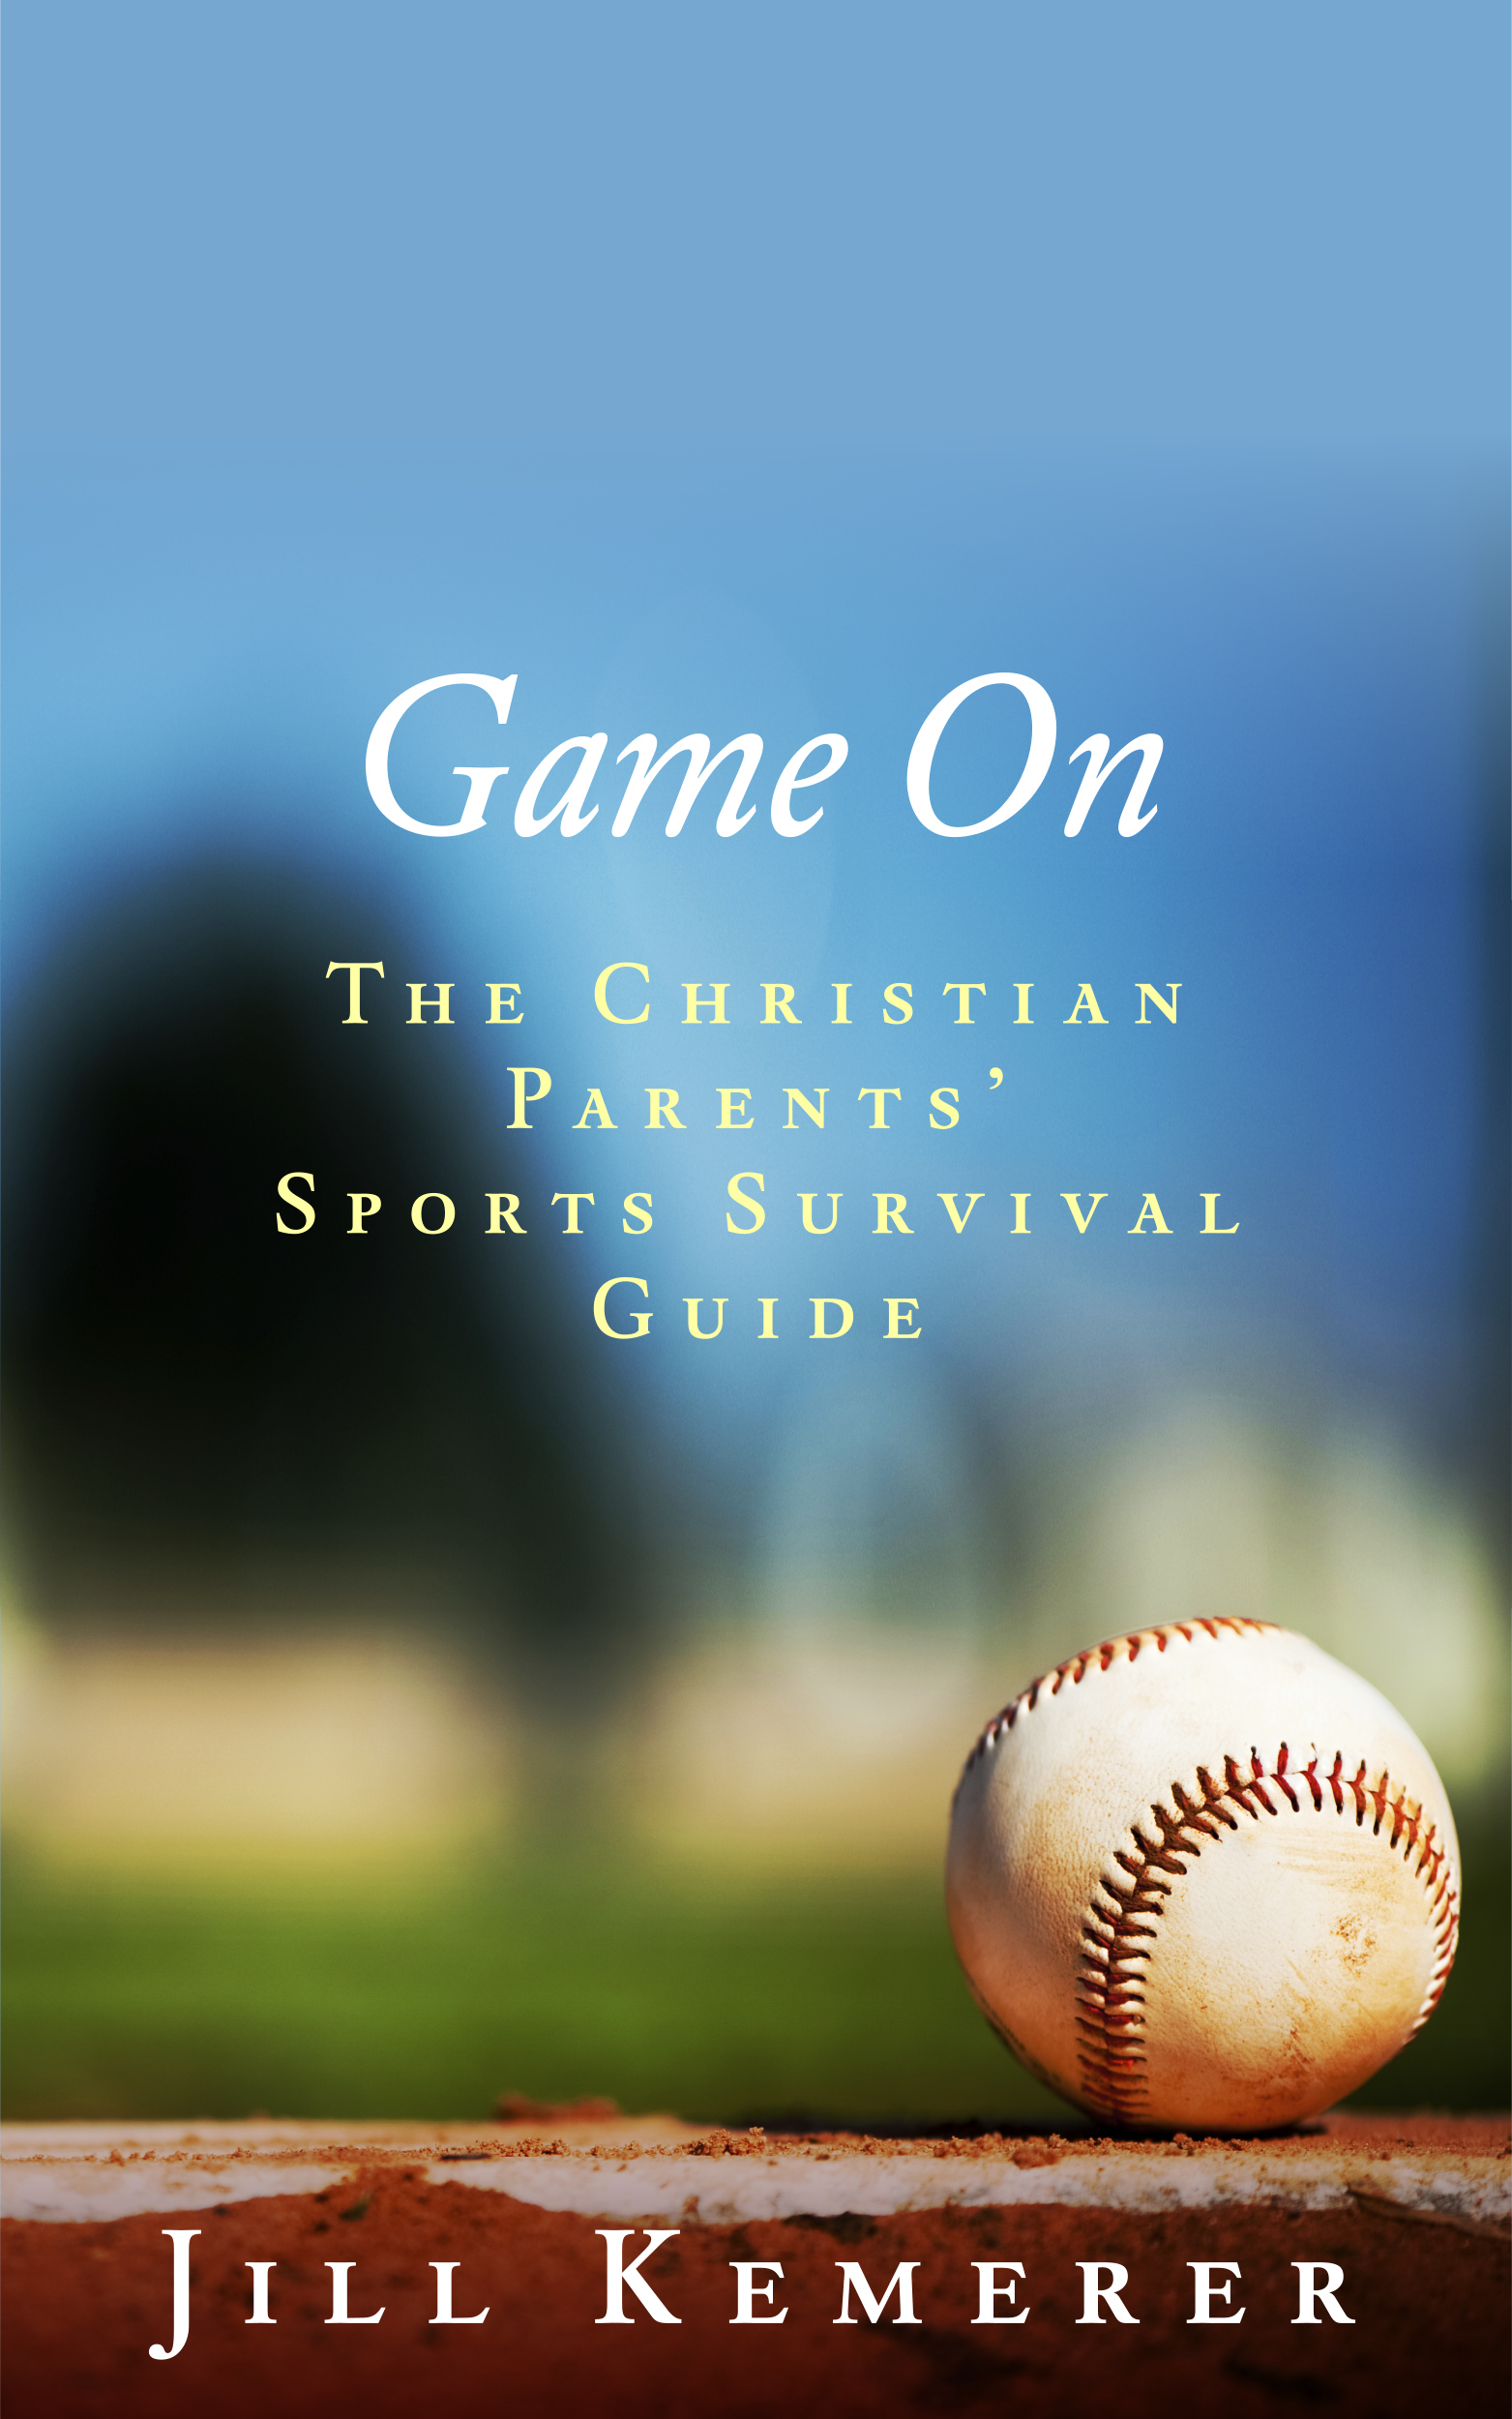 Game On: The Christian Parents' Sports Survival Guide